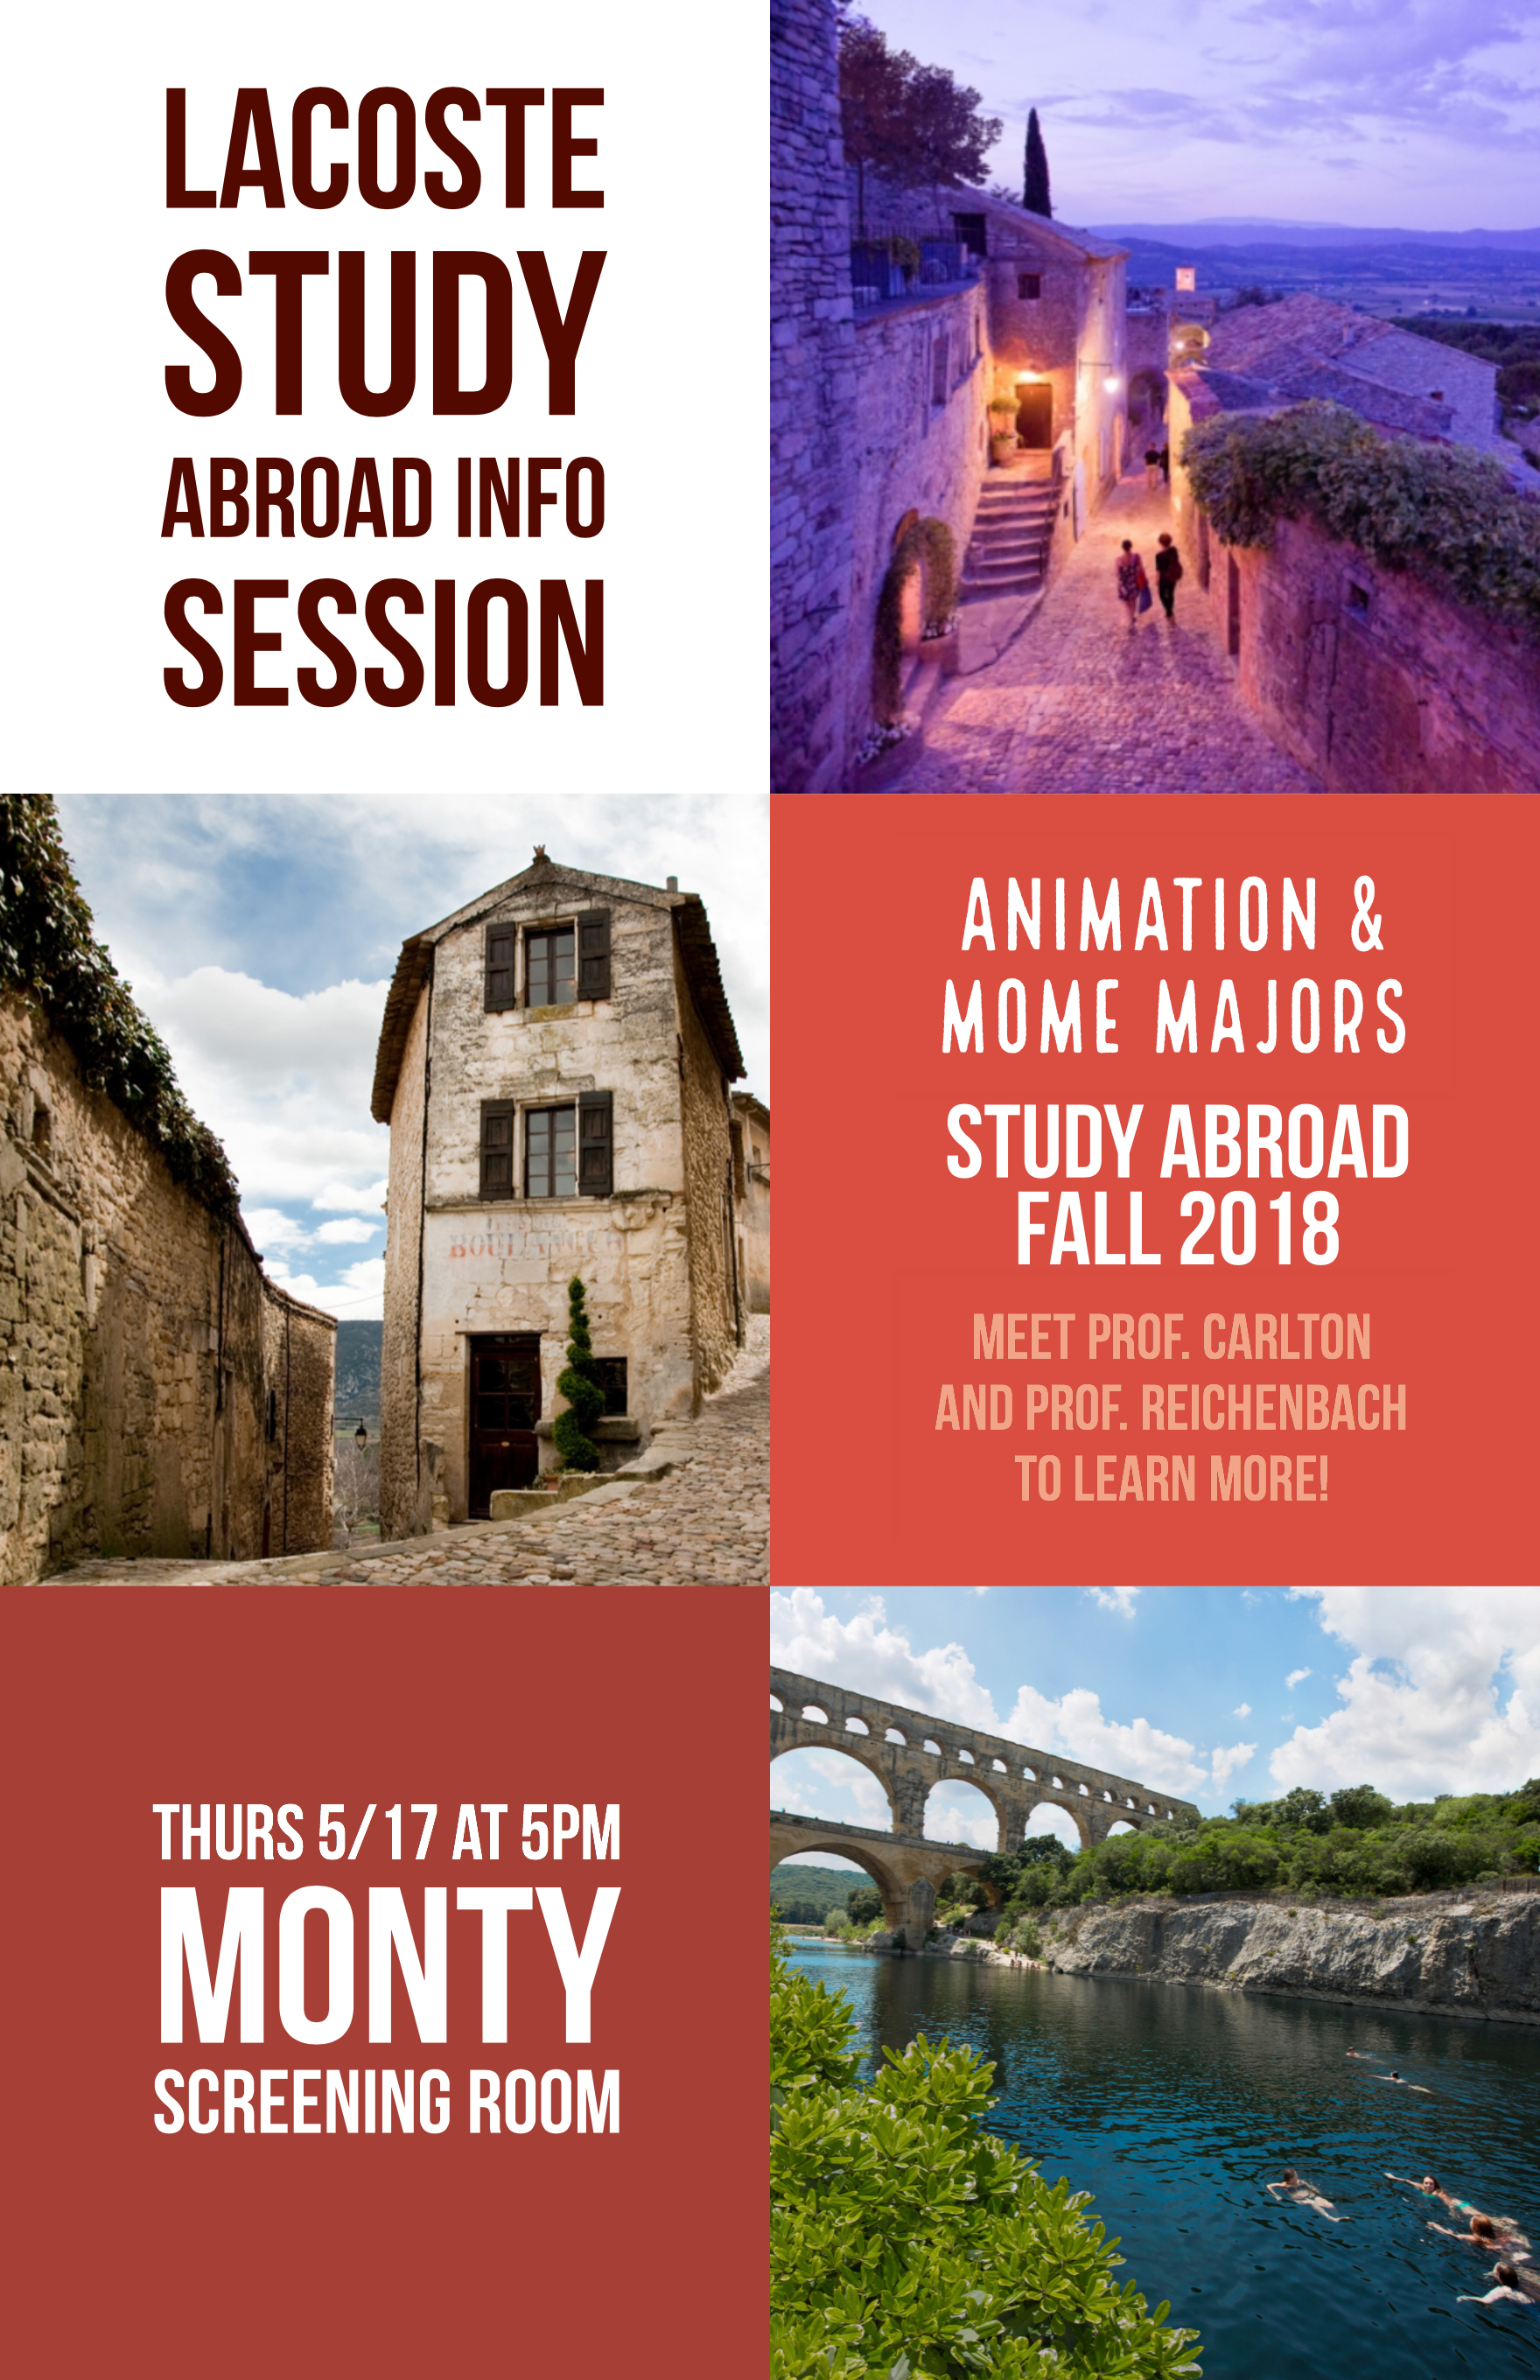 Lacoste Study Abroad Info Session